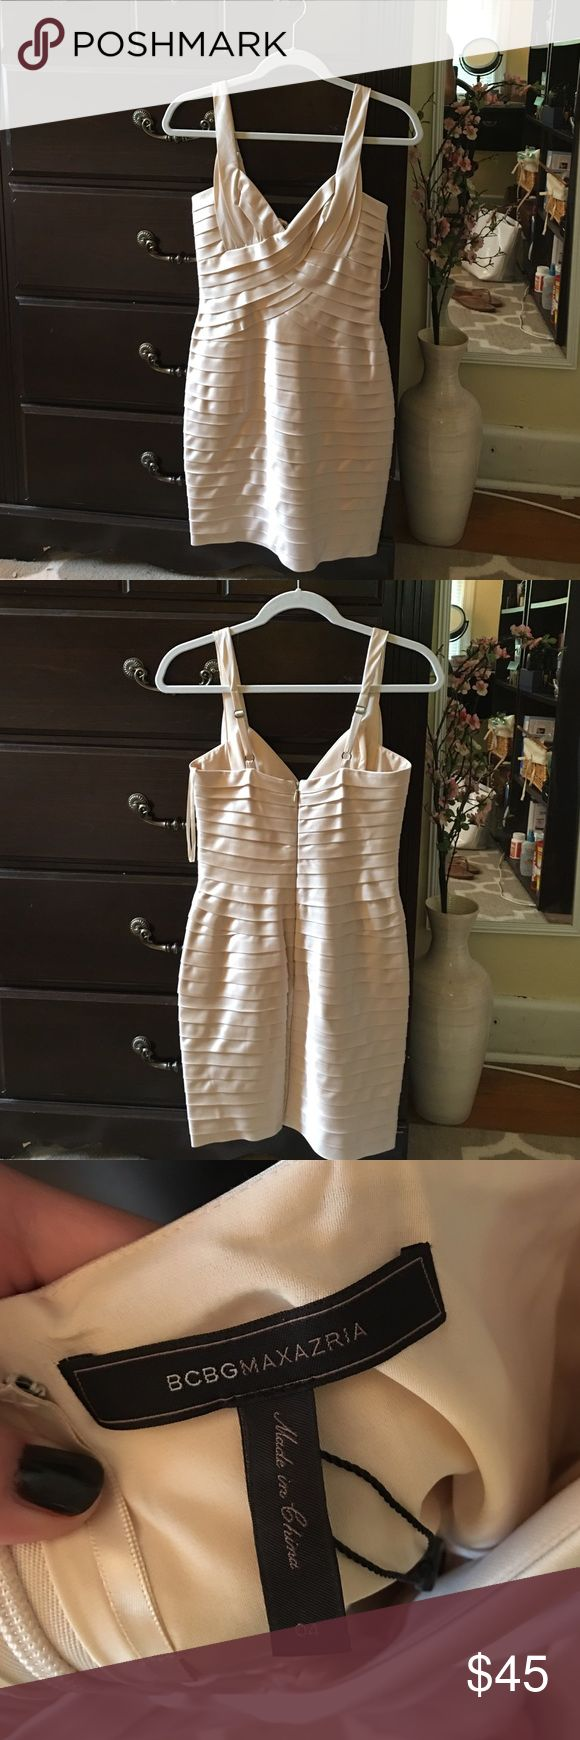 BCBG cream cocktail dress, never worn Cream cocktail dress. Hugs your curves and shows off your body in the most magically flattering way! BCBG Dresses Mini